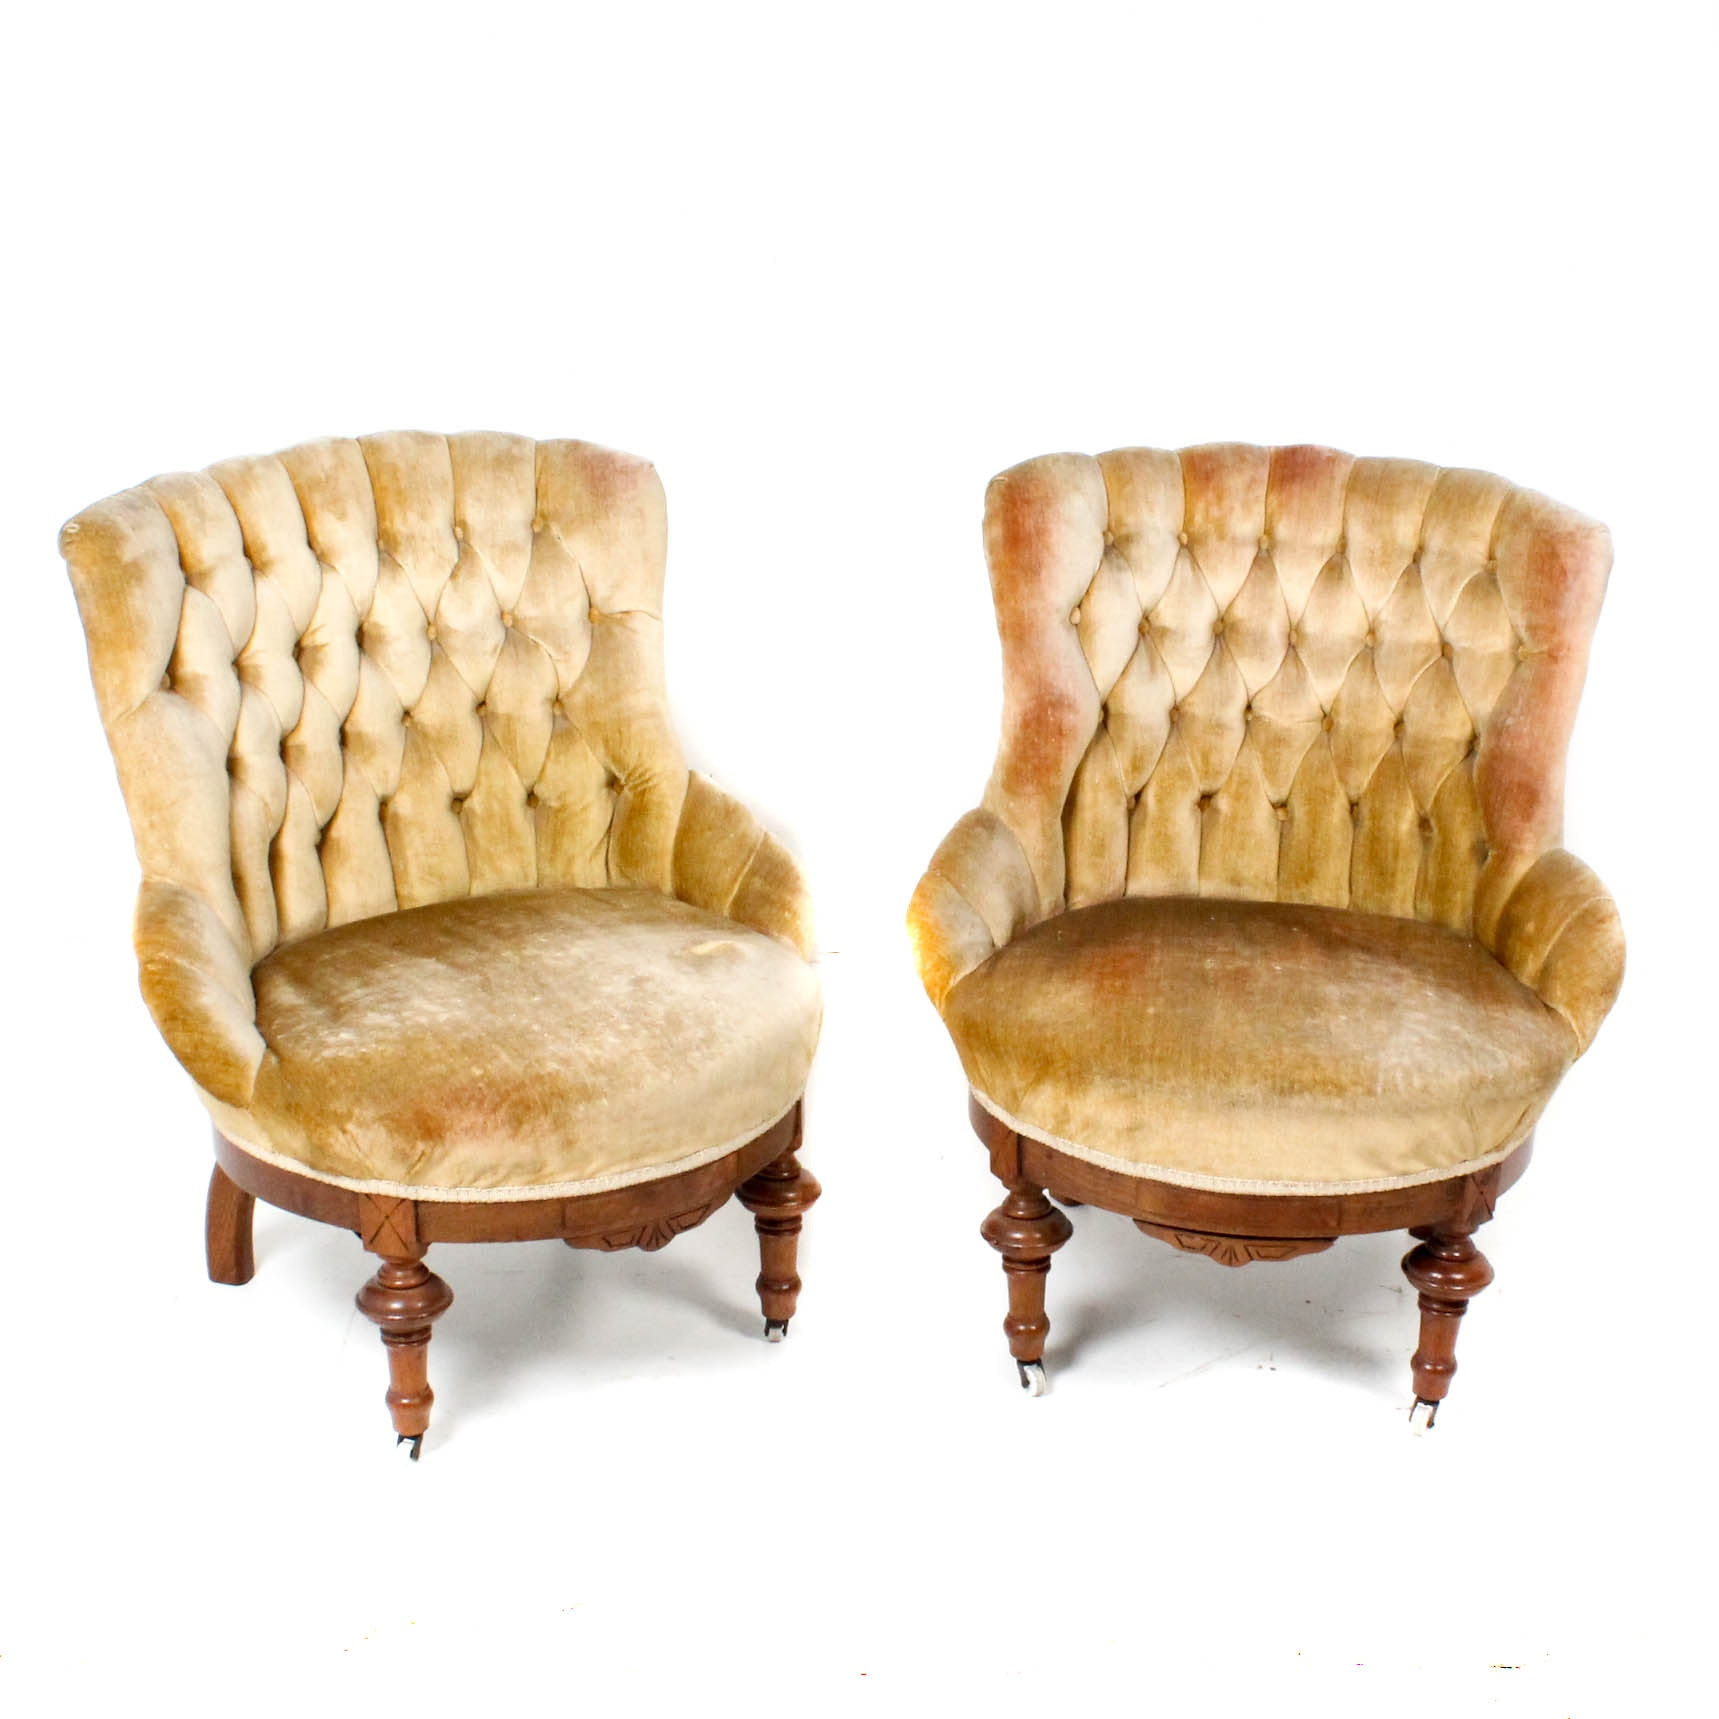 Antique Tub Chairs